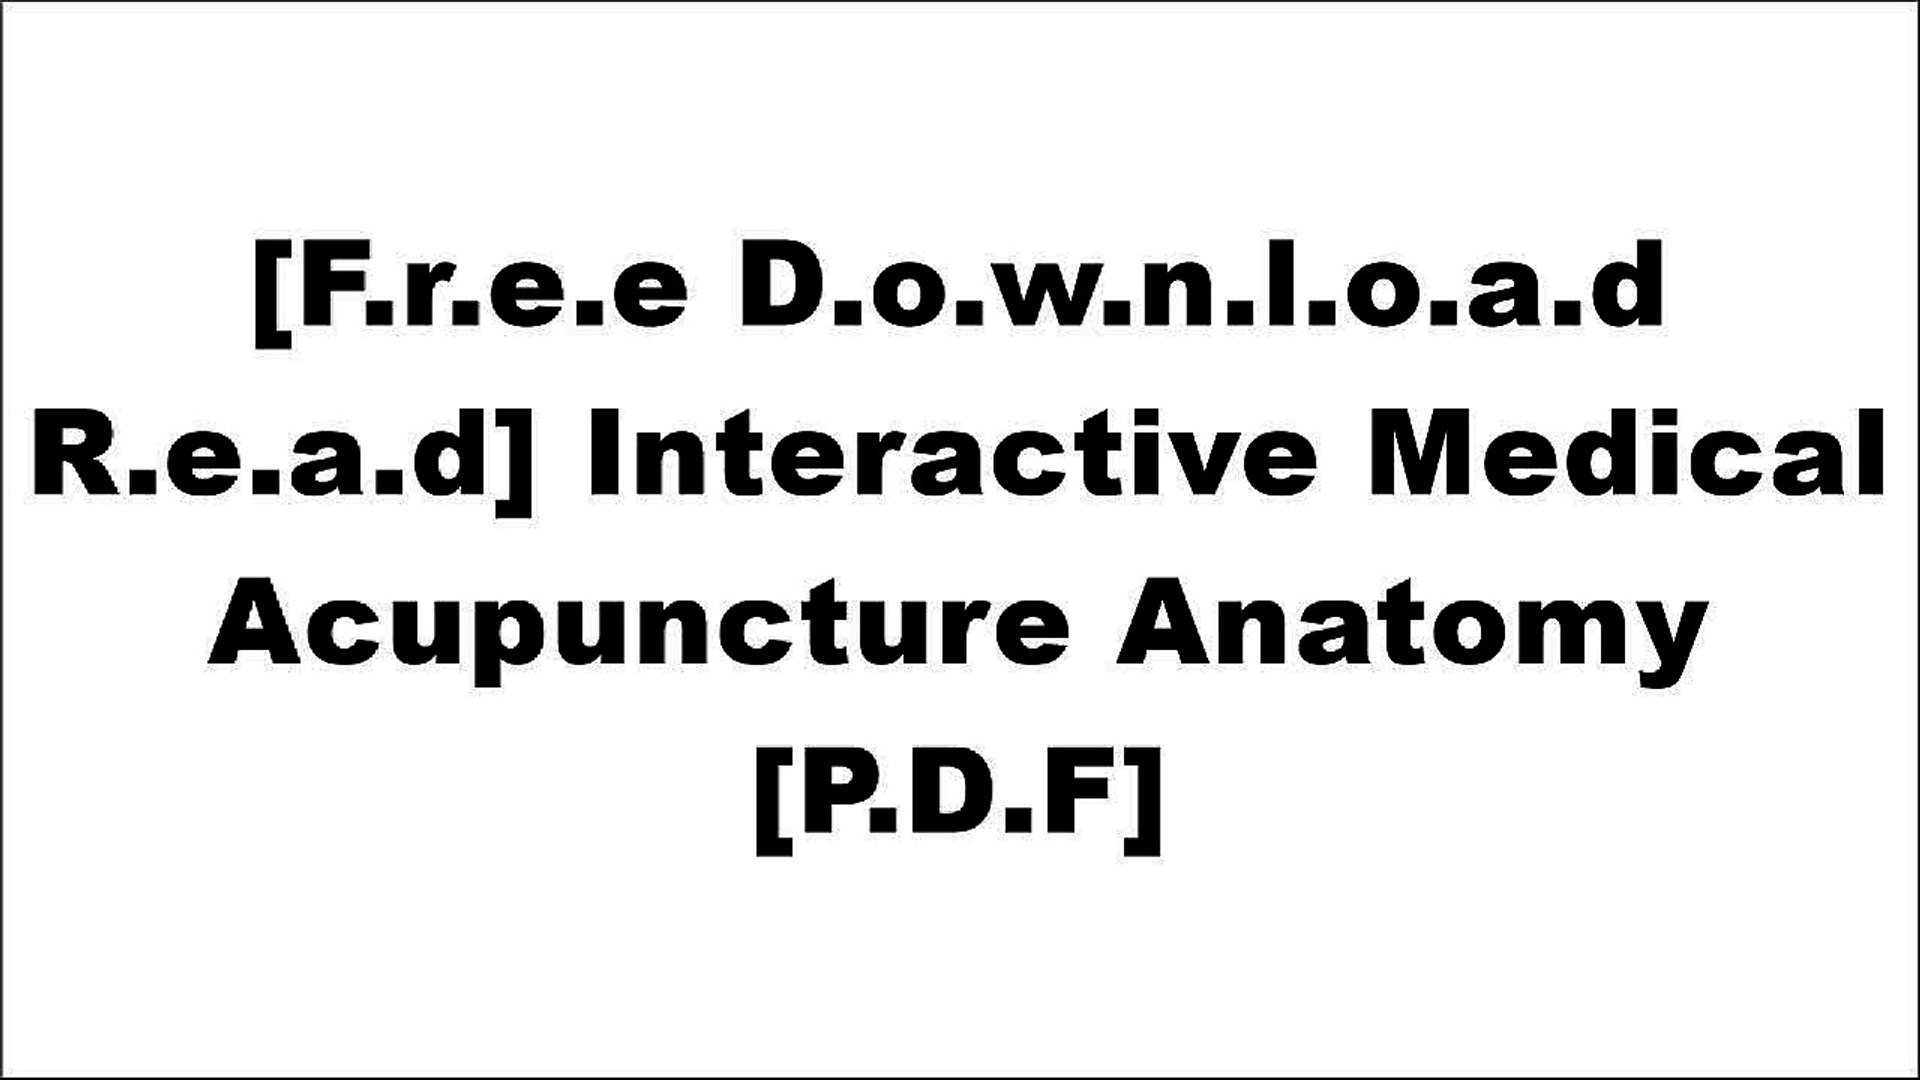 [V0fwV.[F.r.e.e] [D.o.w.n.l.o.a.d] [R.e.a.d]] Interactive Medical Acupuncture Anatomy by Narda G. Ro